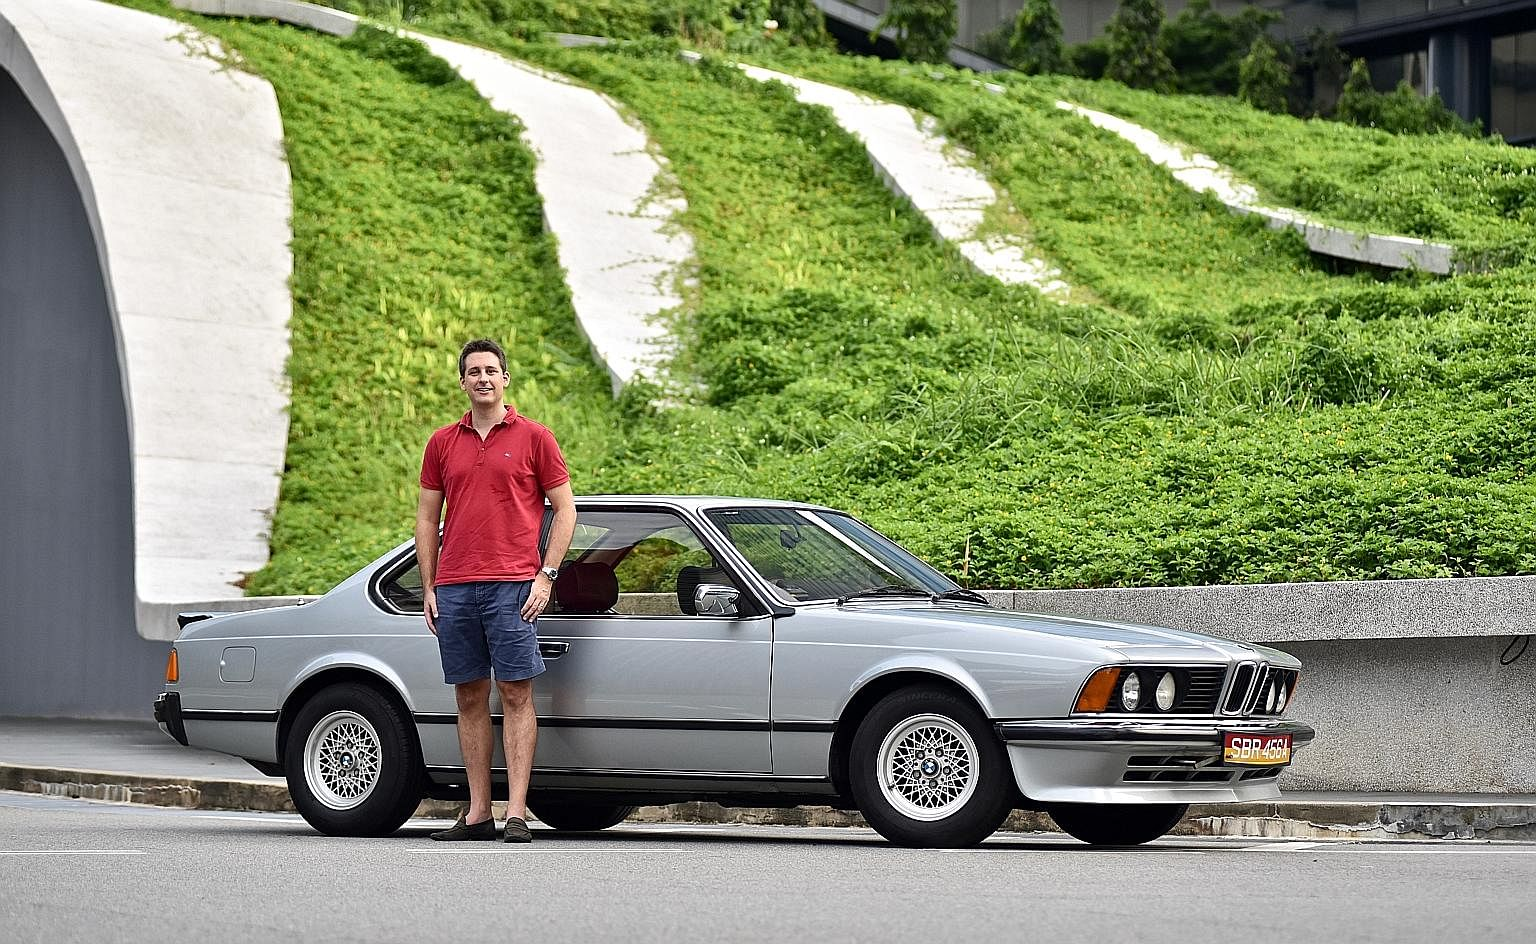 Blast From The Past With The Bmw 635csi Motoring News Top Stories The Straits Times